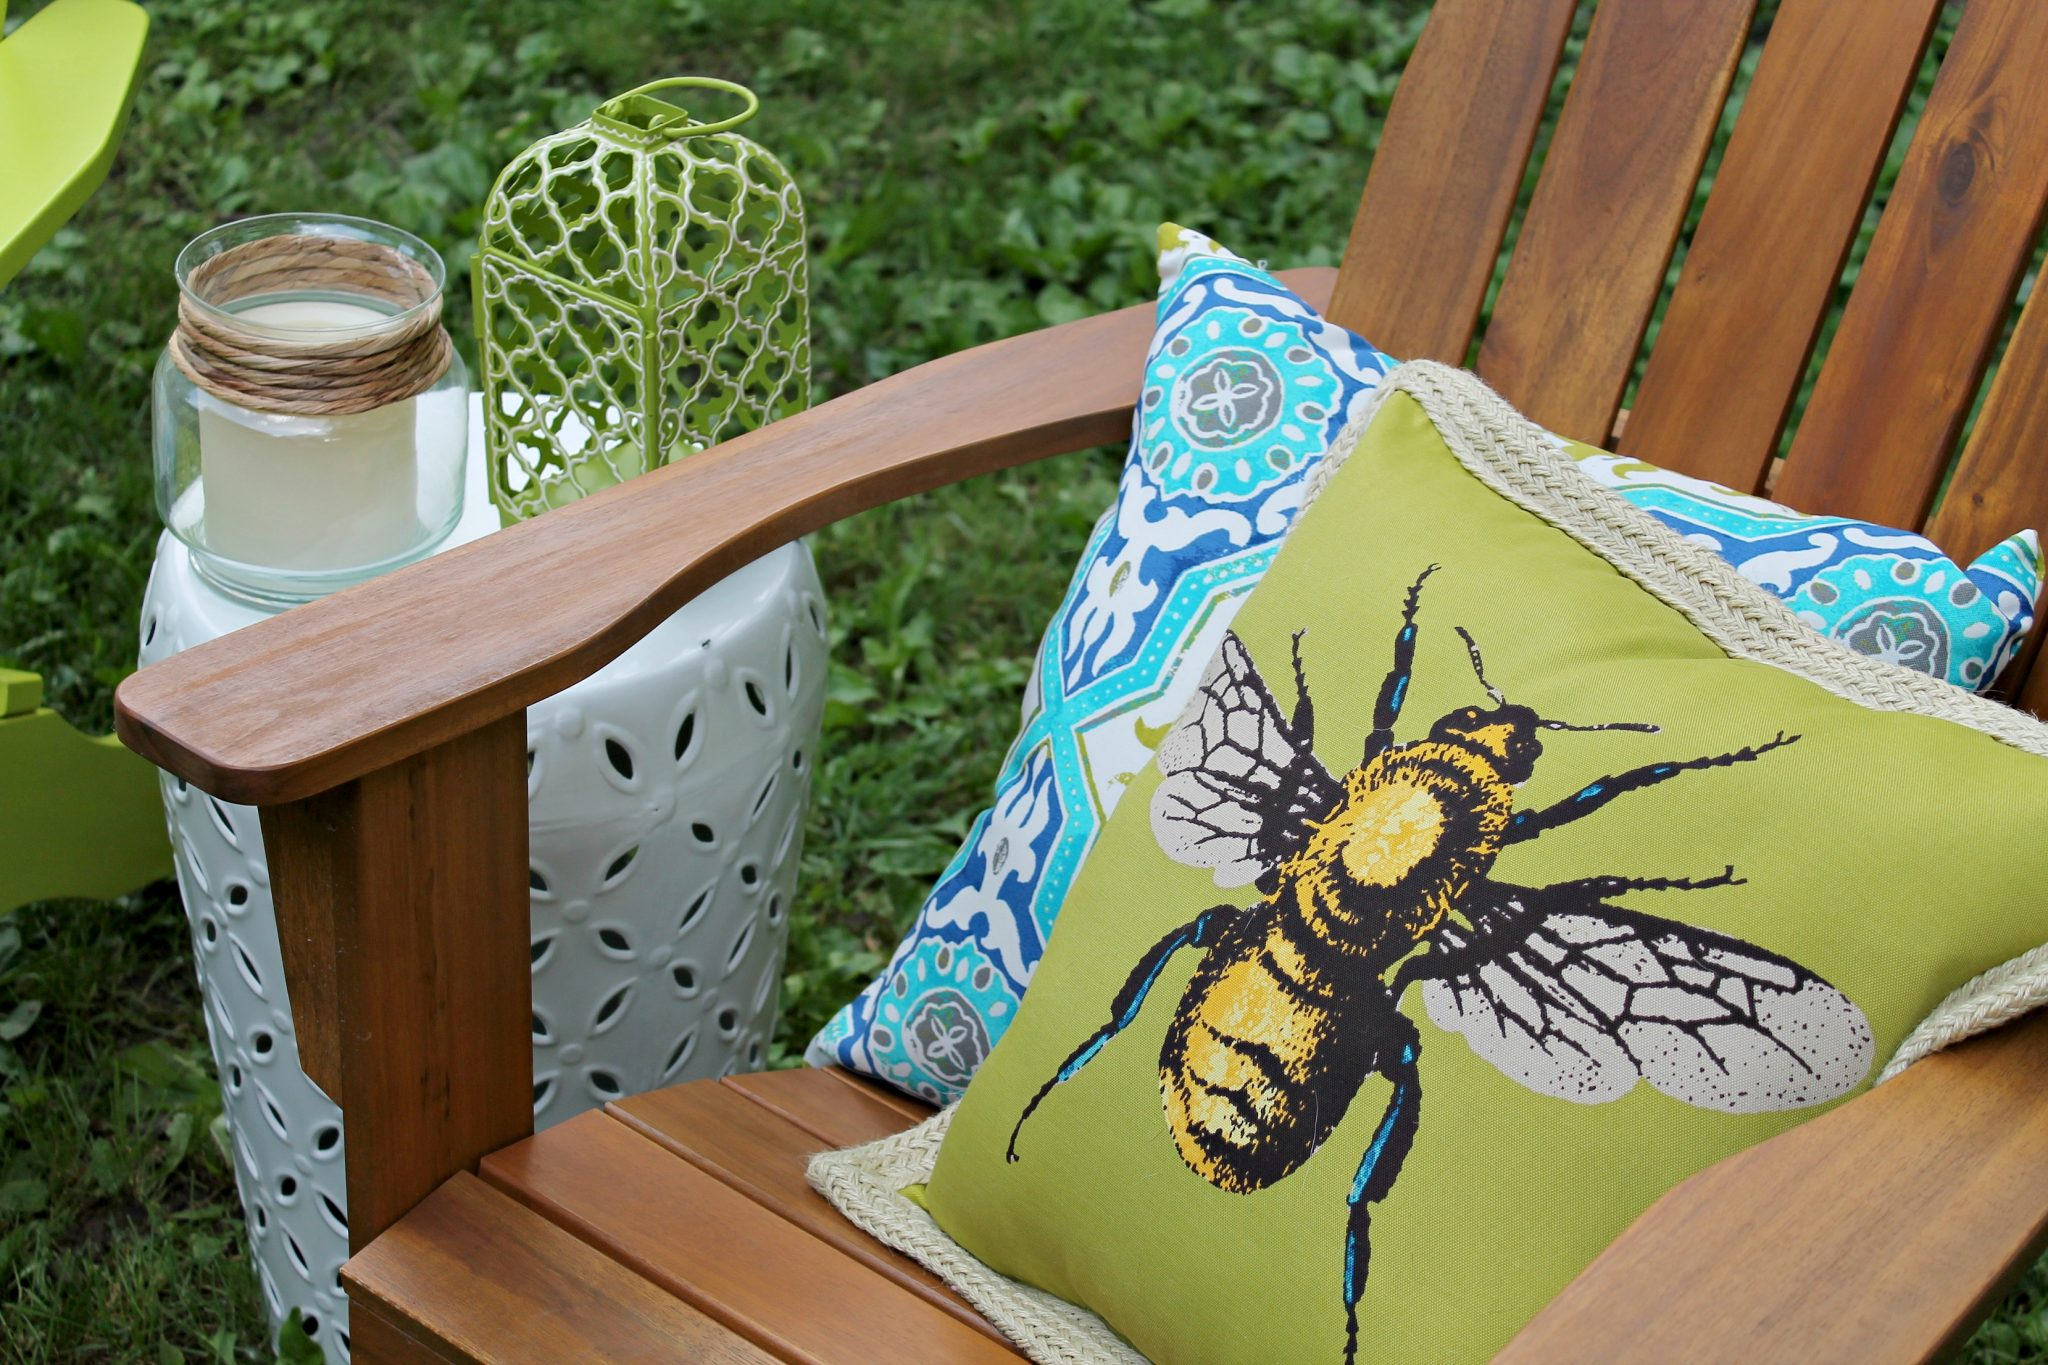 Creating an Outdoor Oasis on a Budget